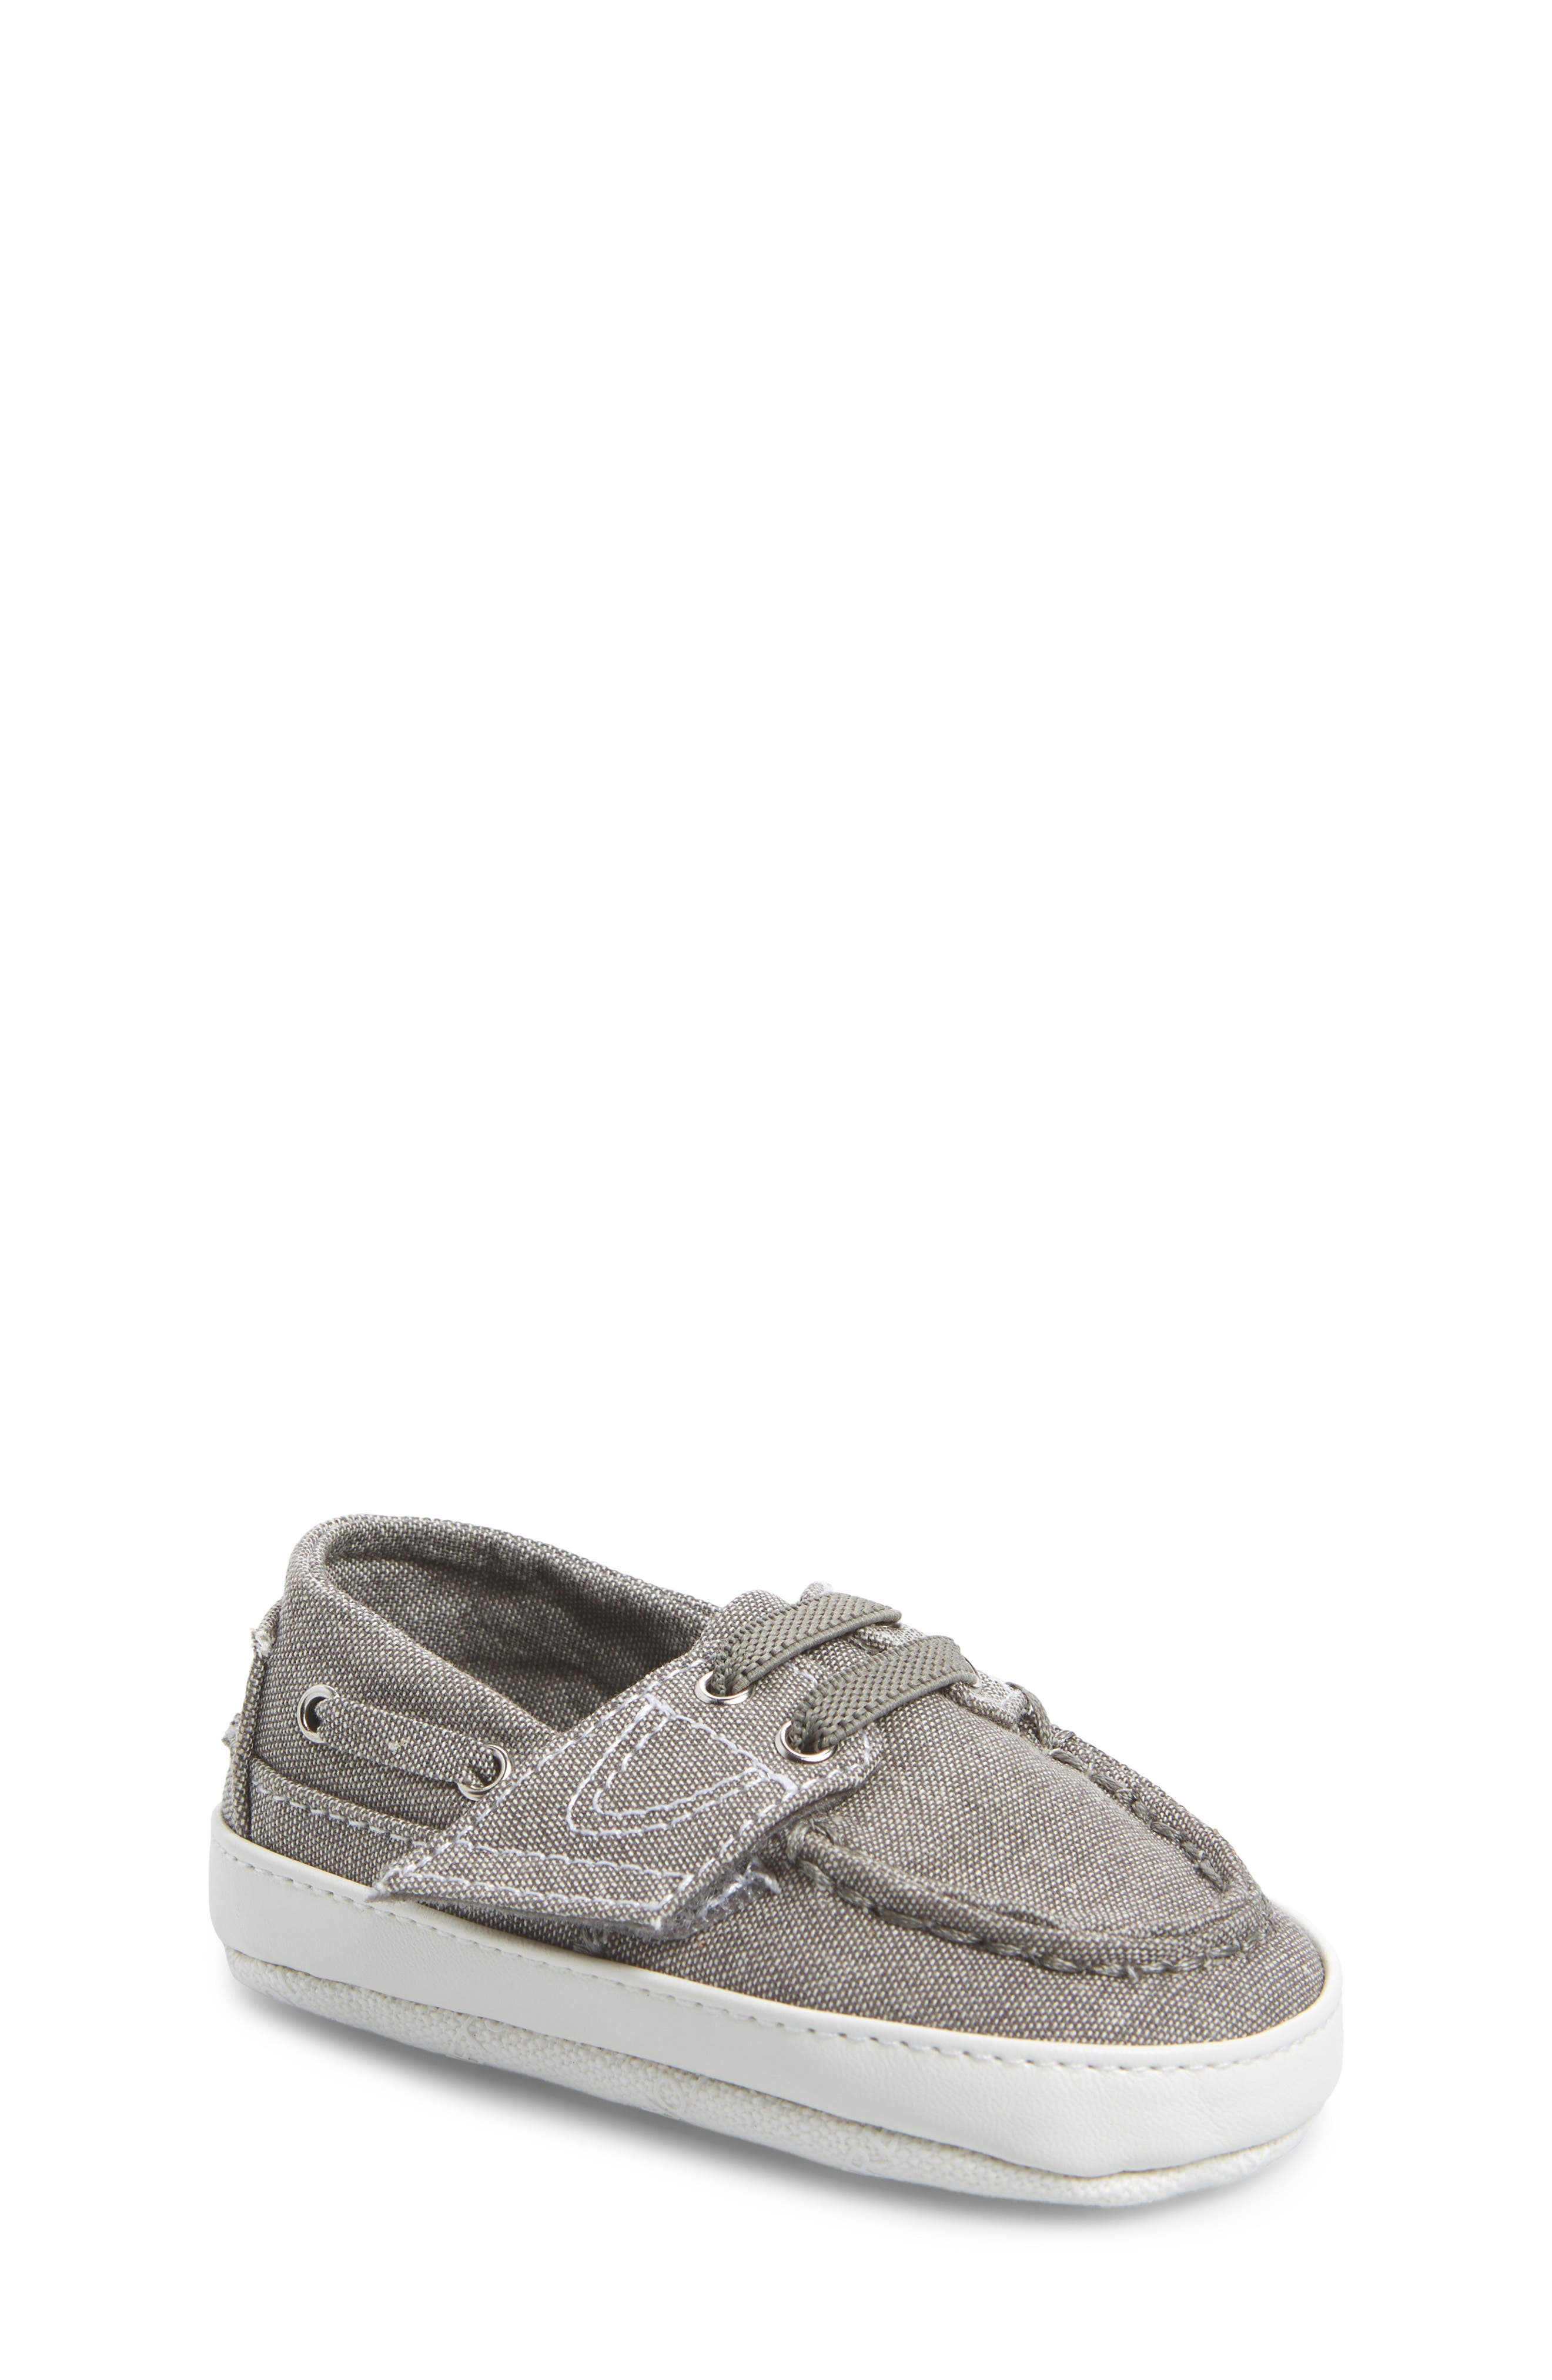 Motto Boat Crib Shoe,                         Main,                         color,